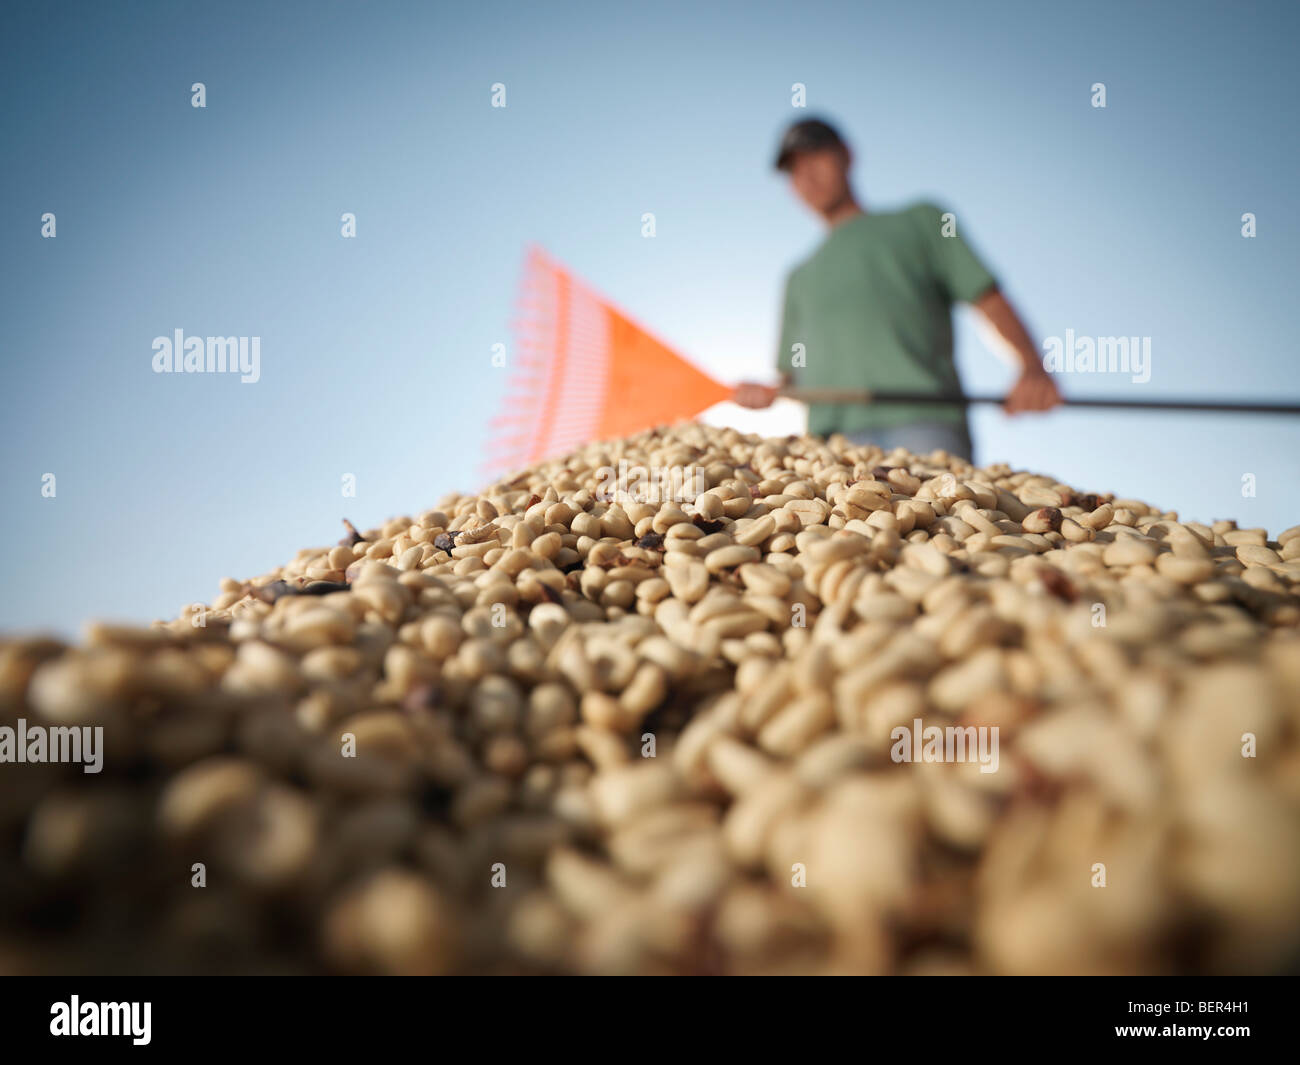 Worker Raking Pile Of Coffee Beans - Stock Image